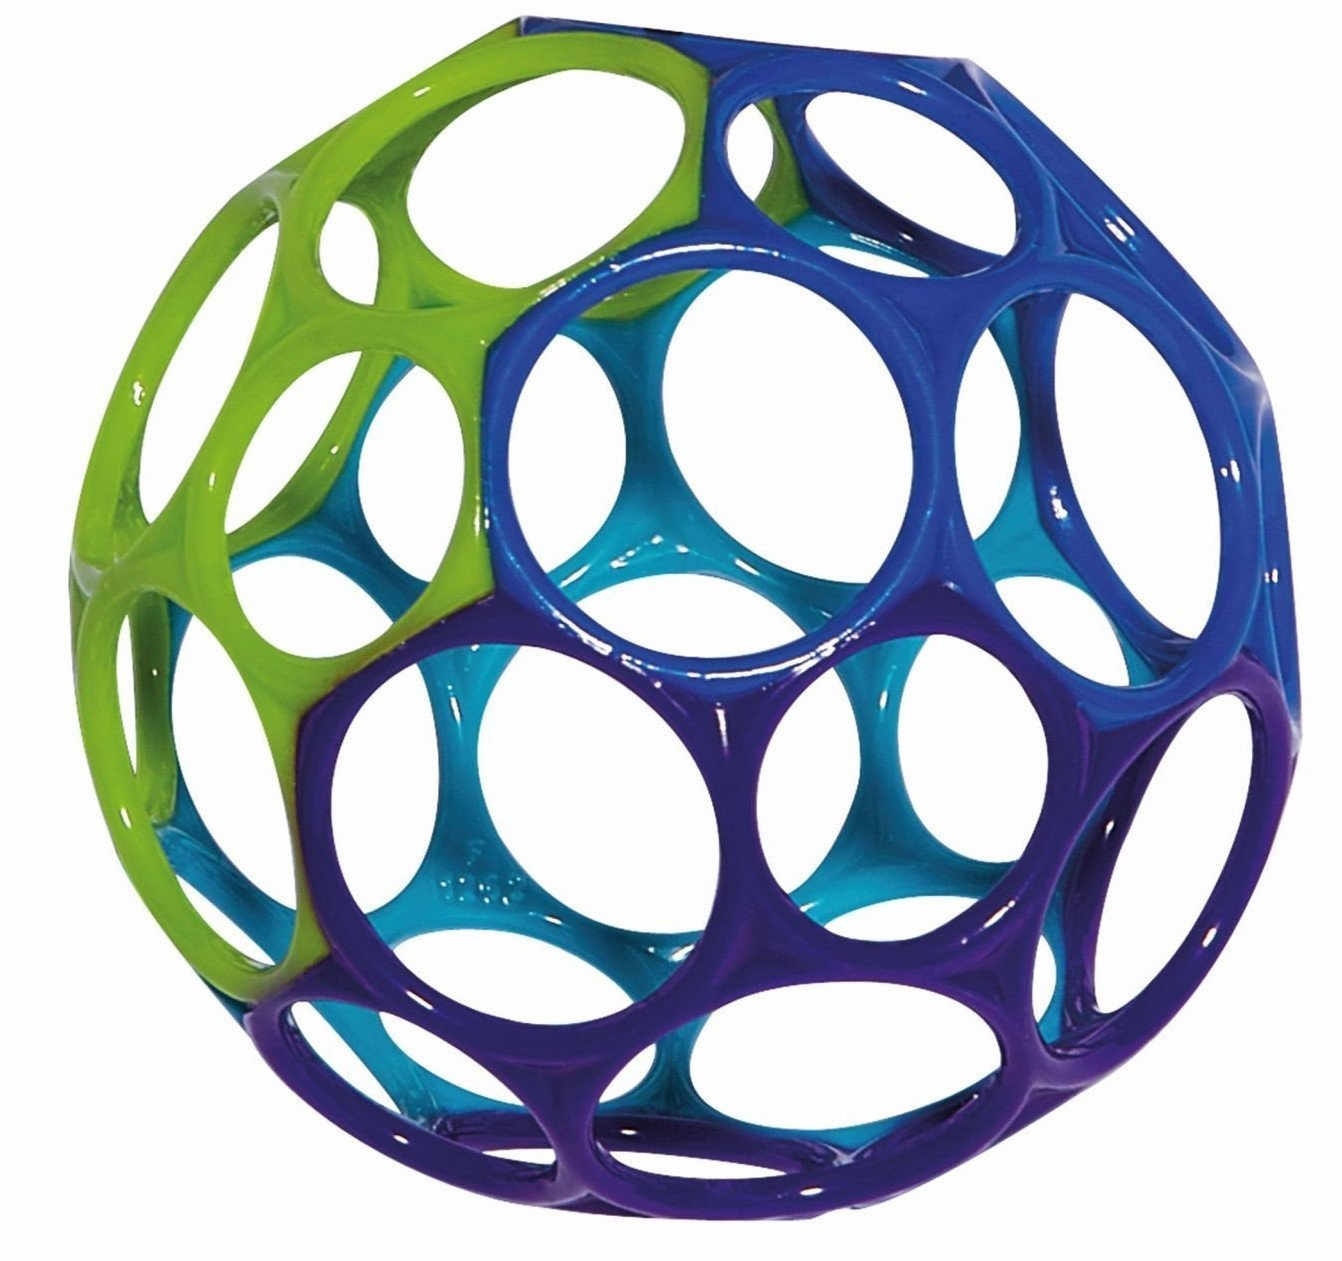 Rhino Toys Oball - Blue/Green/Purple